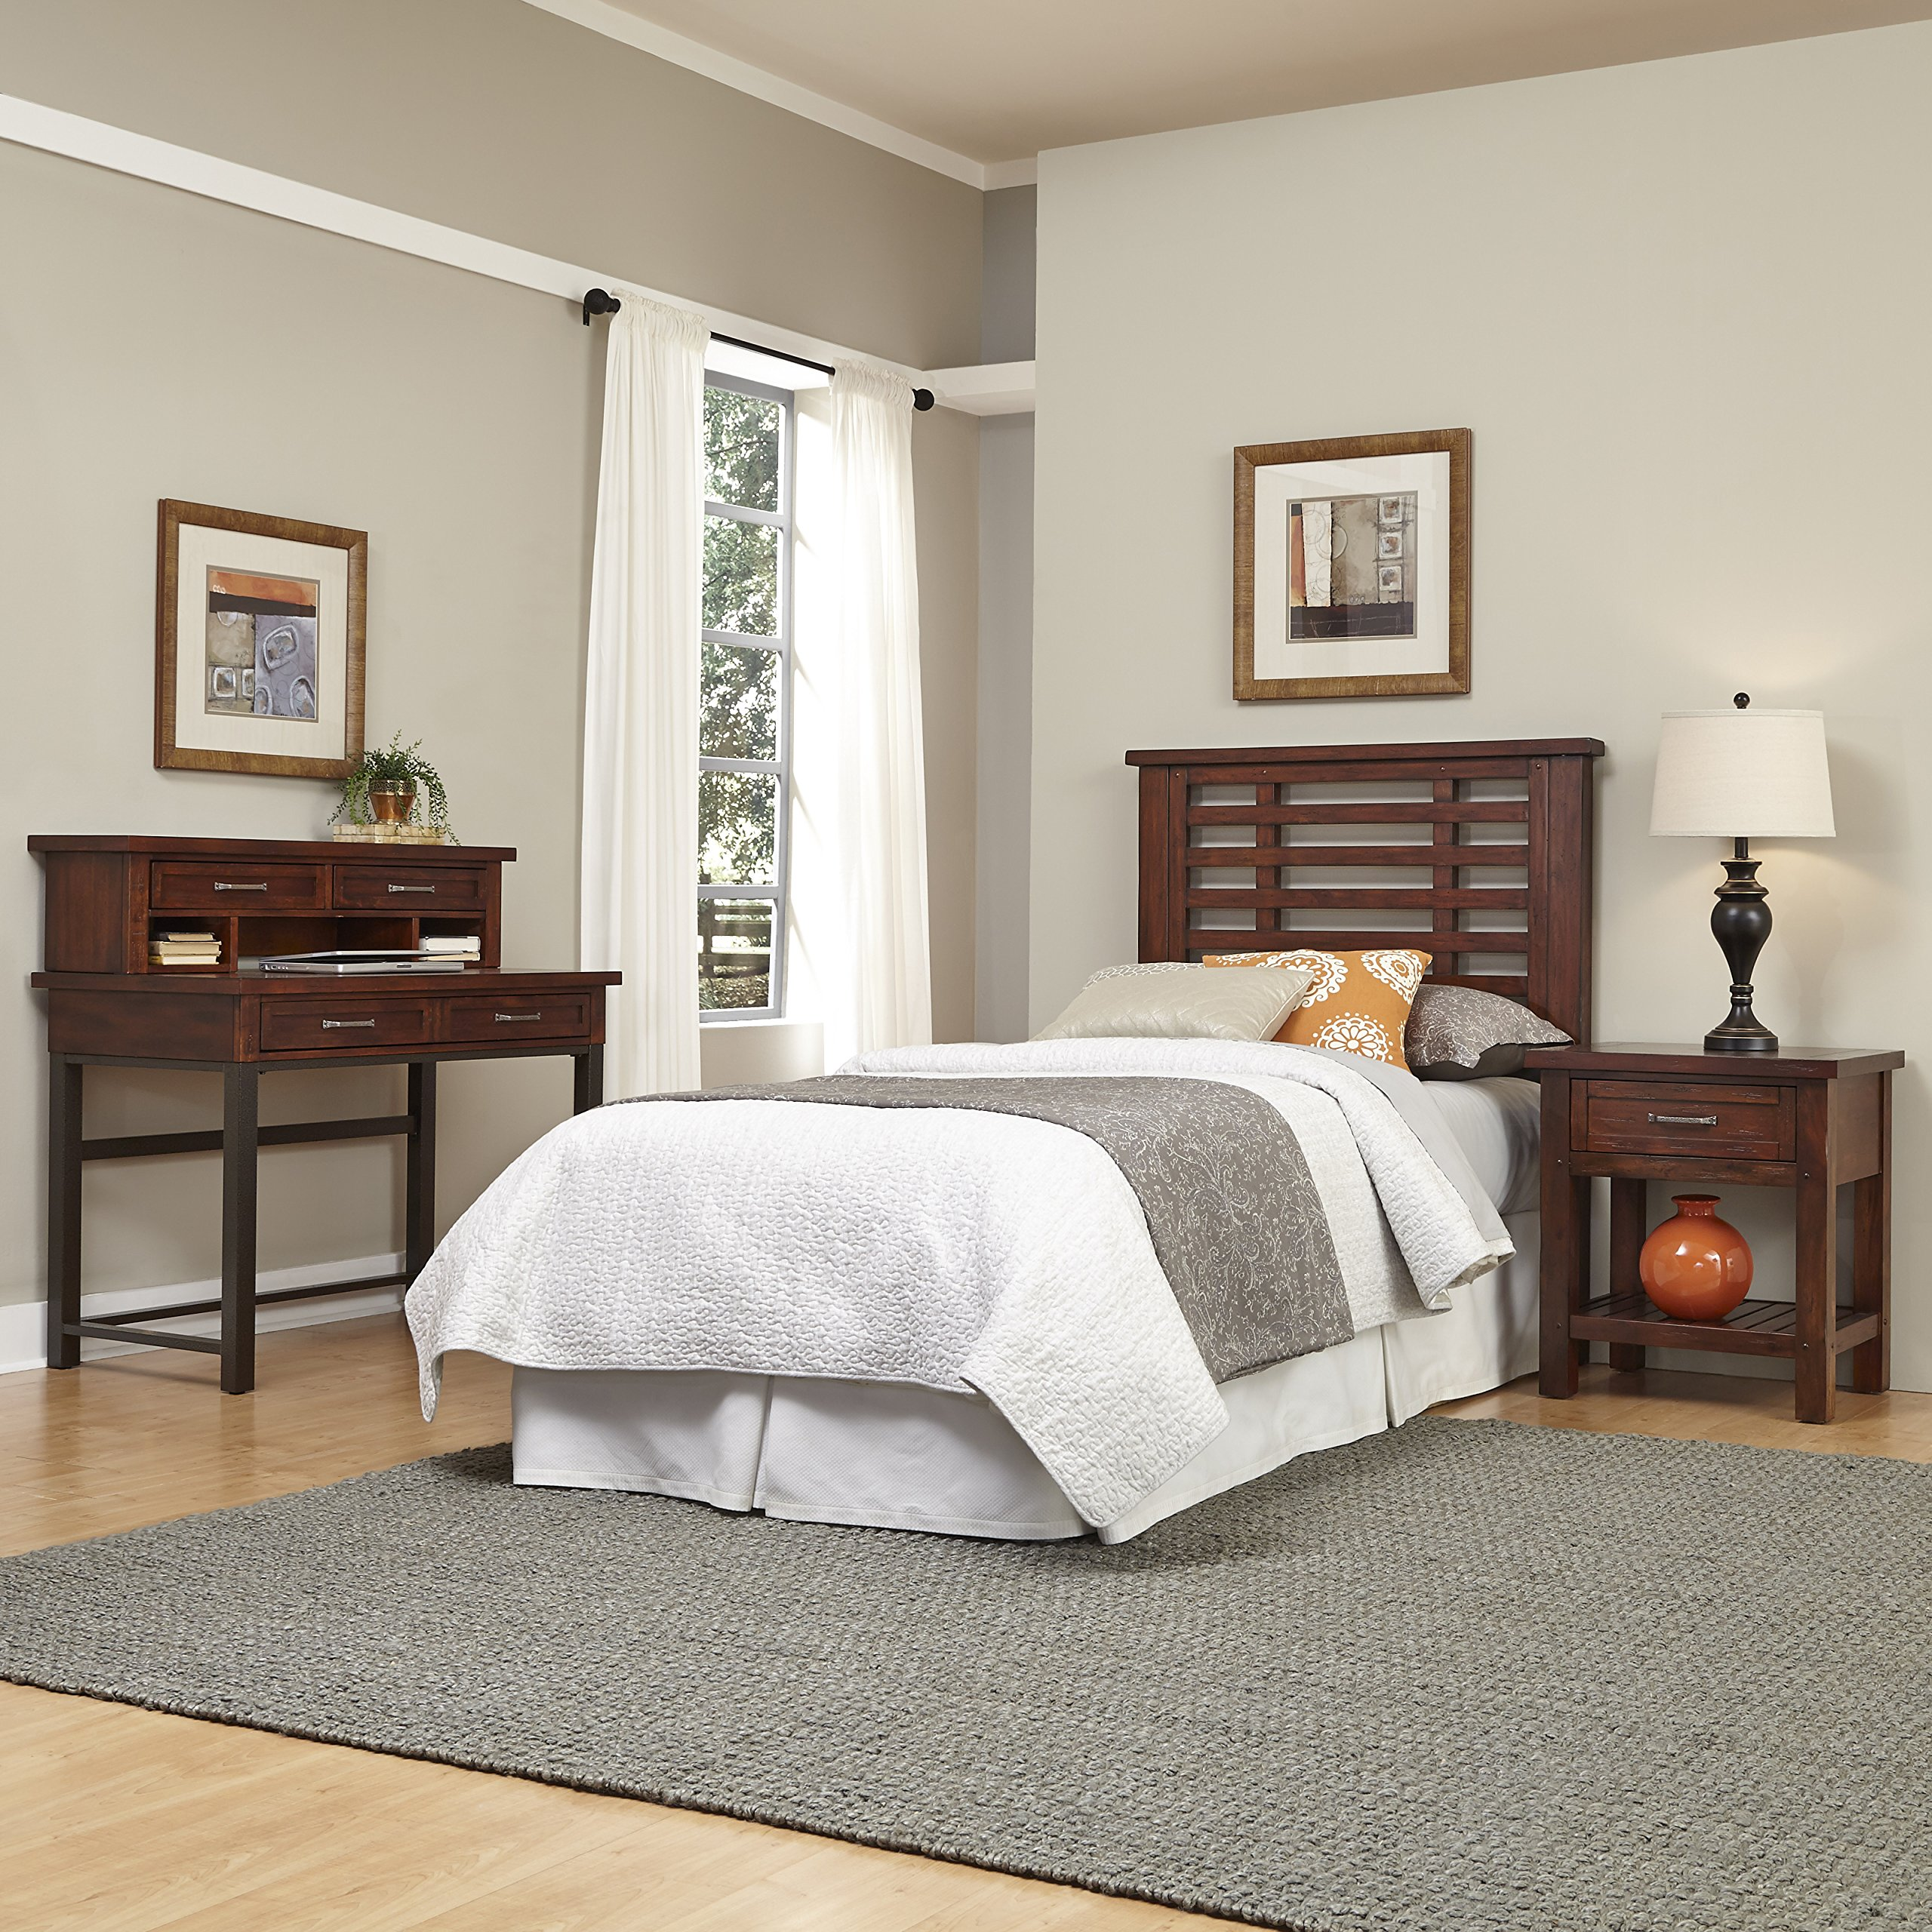 Home Styles 5410-4018 Cabin Creek Chestnut Finish Headboard, Night Stand & Student Desk with Hutch, Twin